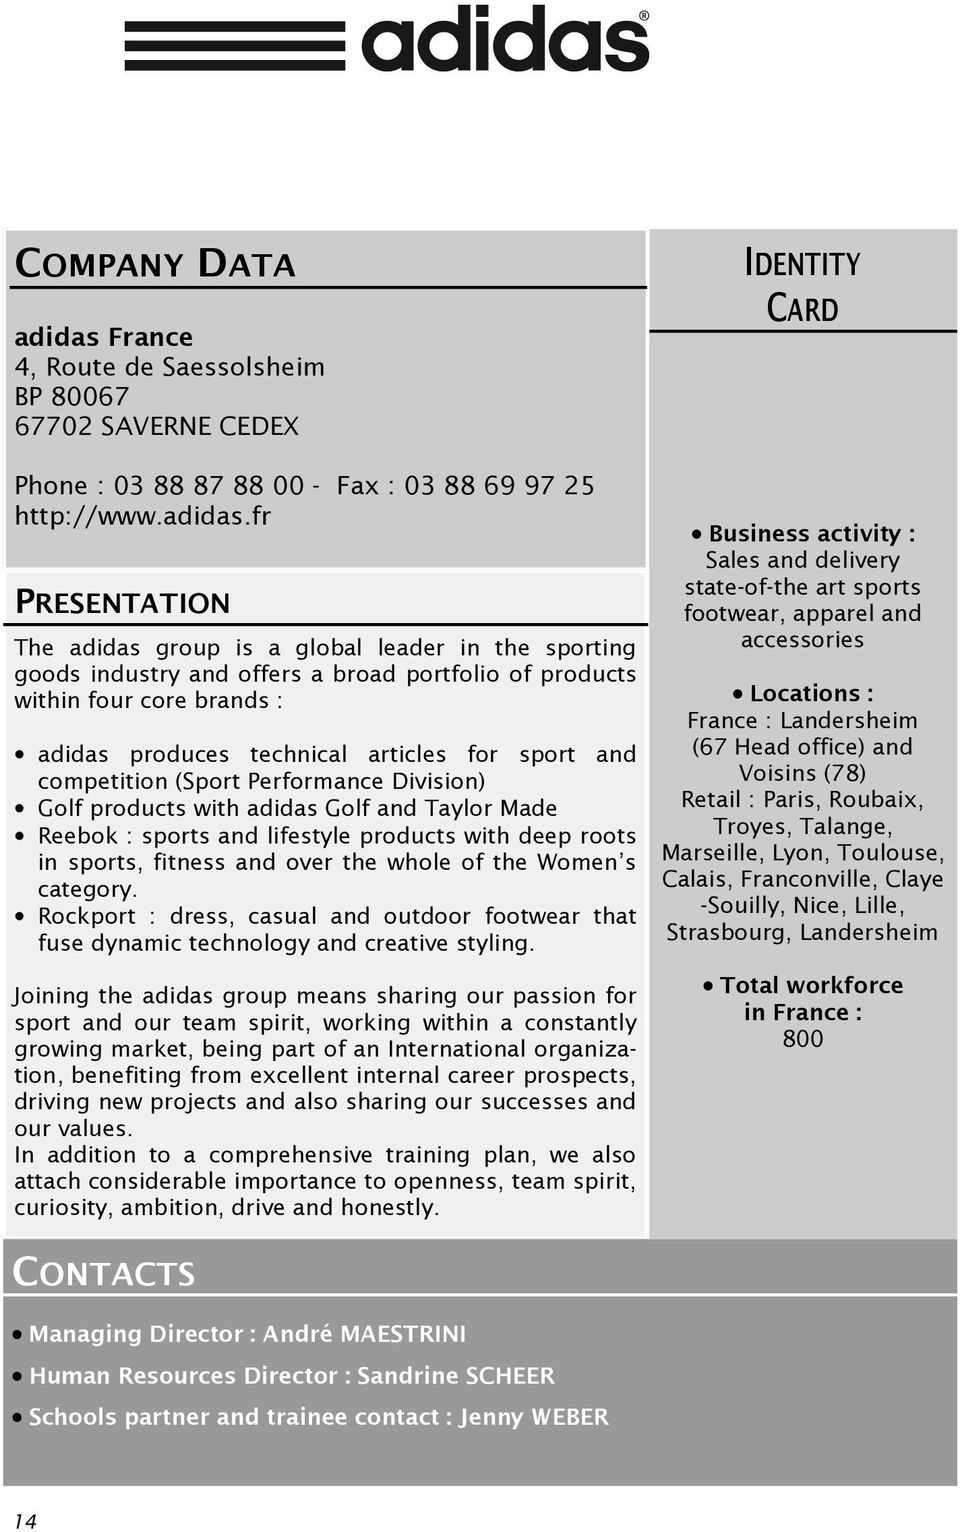 fr PRESENTATION The adidas group is a global leader in the sporting goods industry and offers a broad portfolio of products within four core brands : adidas produces technical articles for sport and